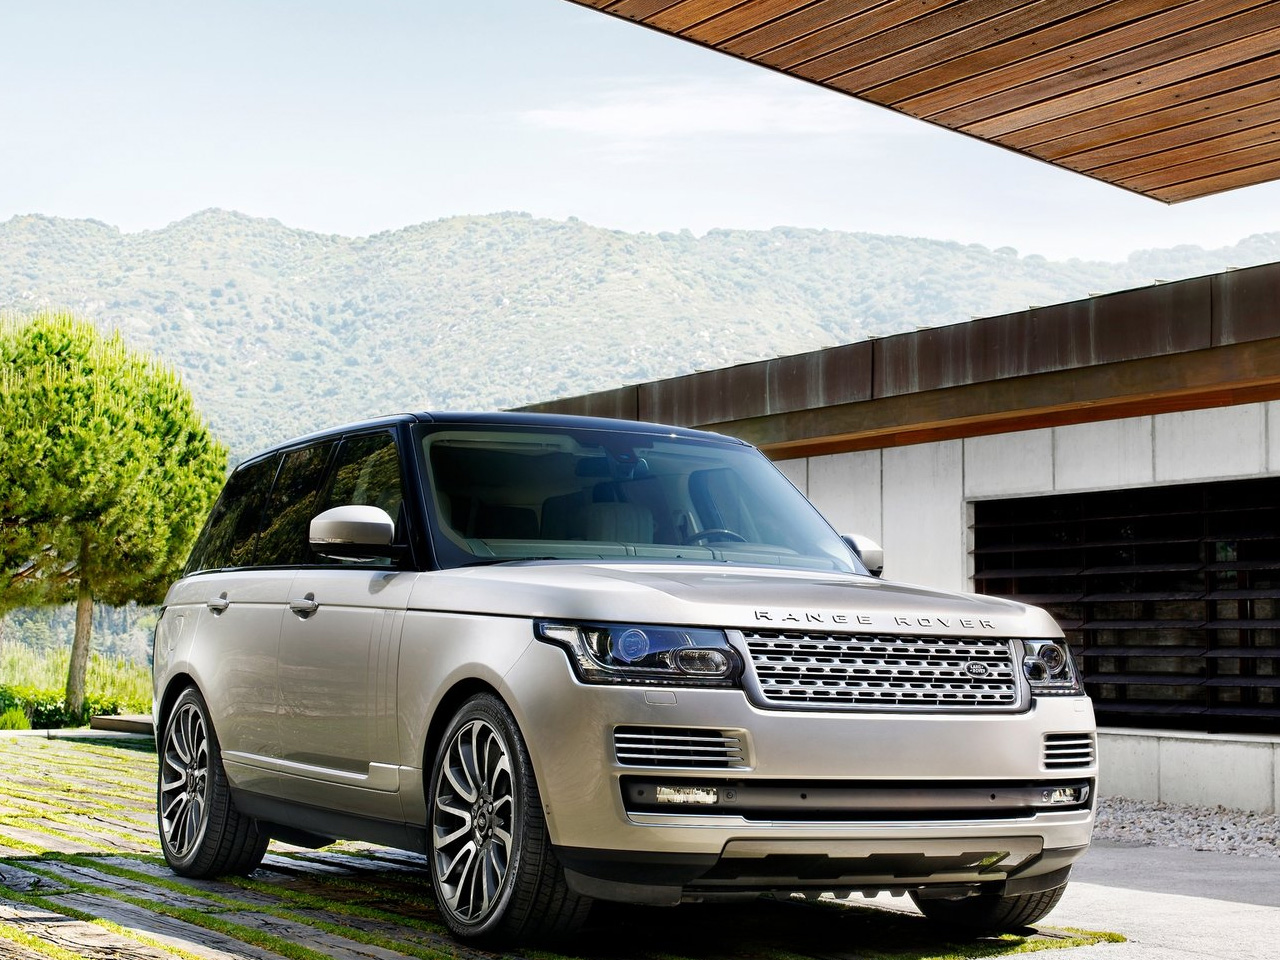 Land Rover Range Rover 4.4 2013 photo - 2